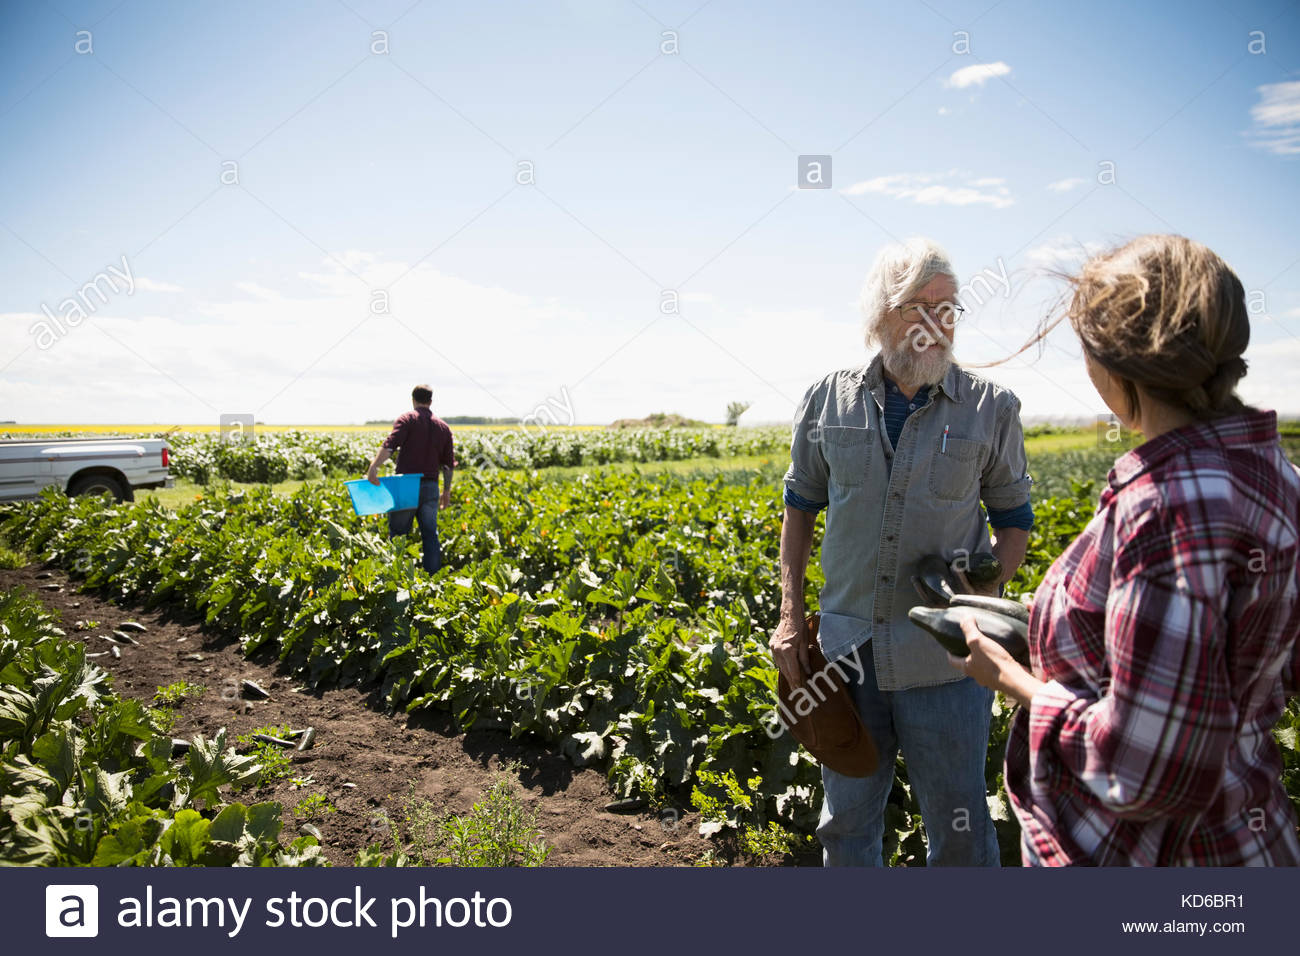 Farmers talking, harvesting zucchini in crop on sunny farm Stock Photo